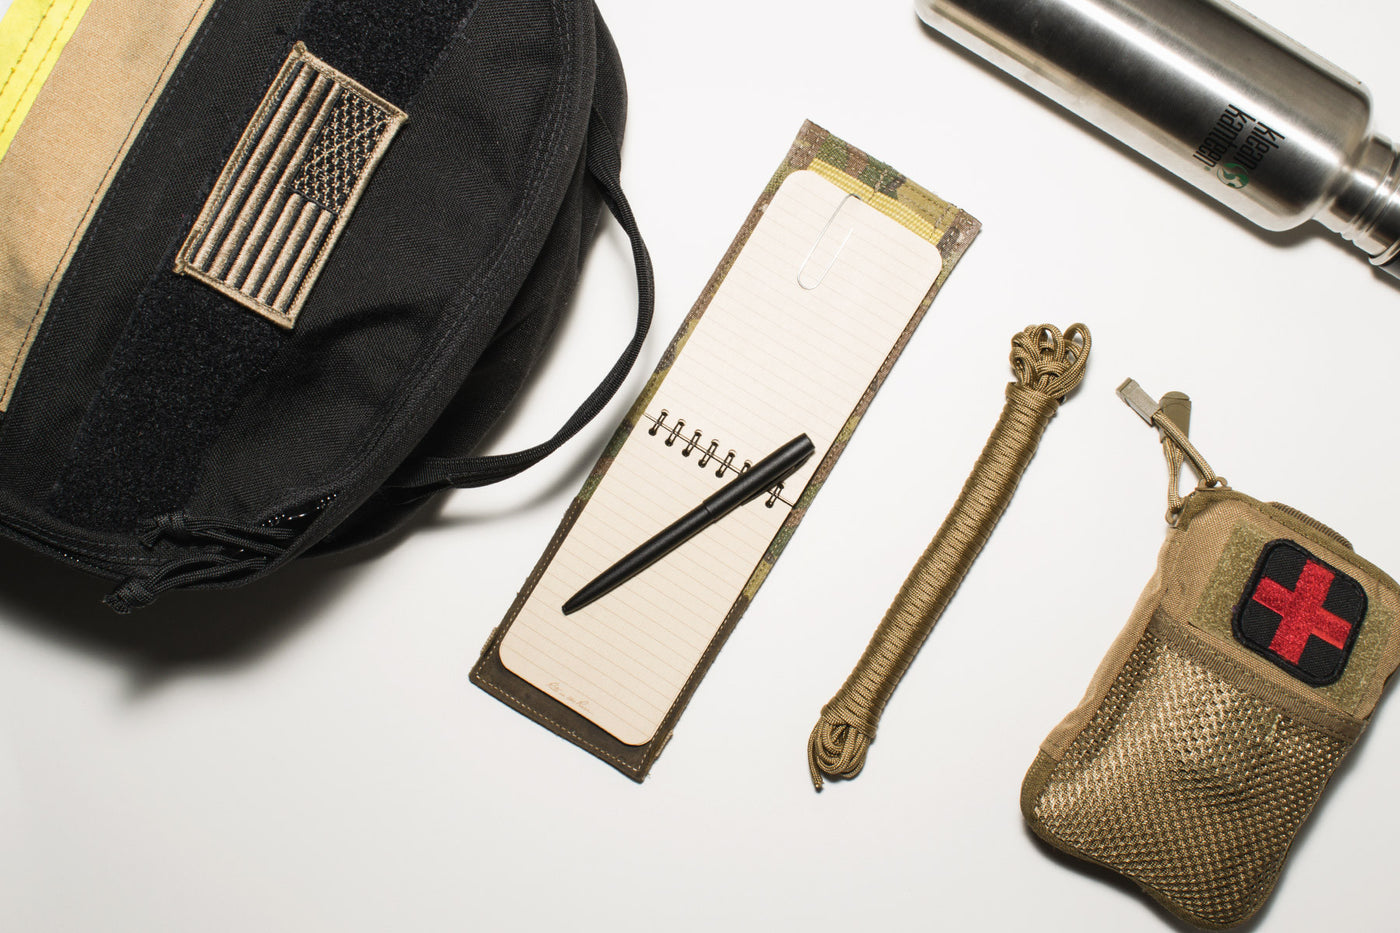 Everyday Carry for Beginners (Top 10 EDC Items) - Recycled